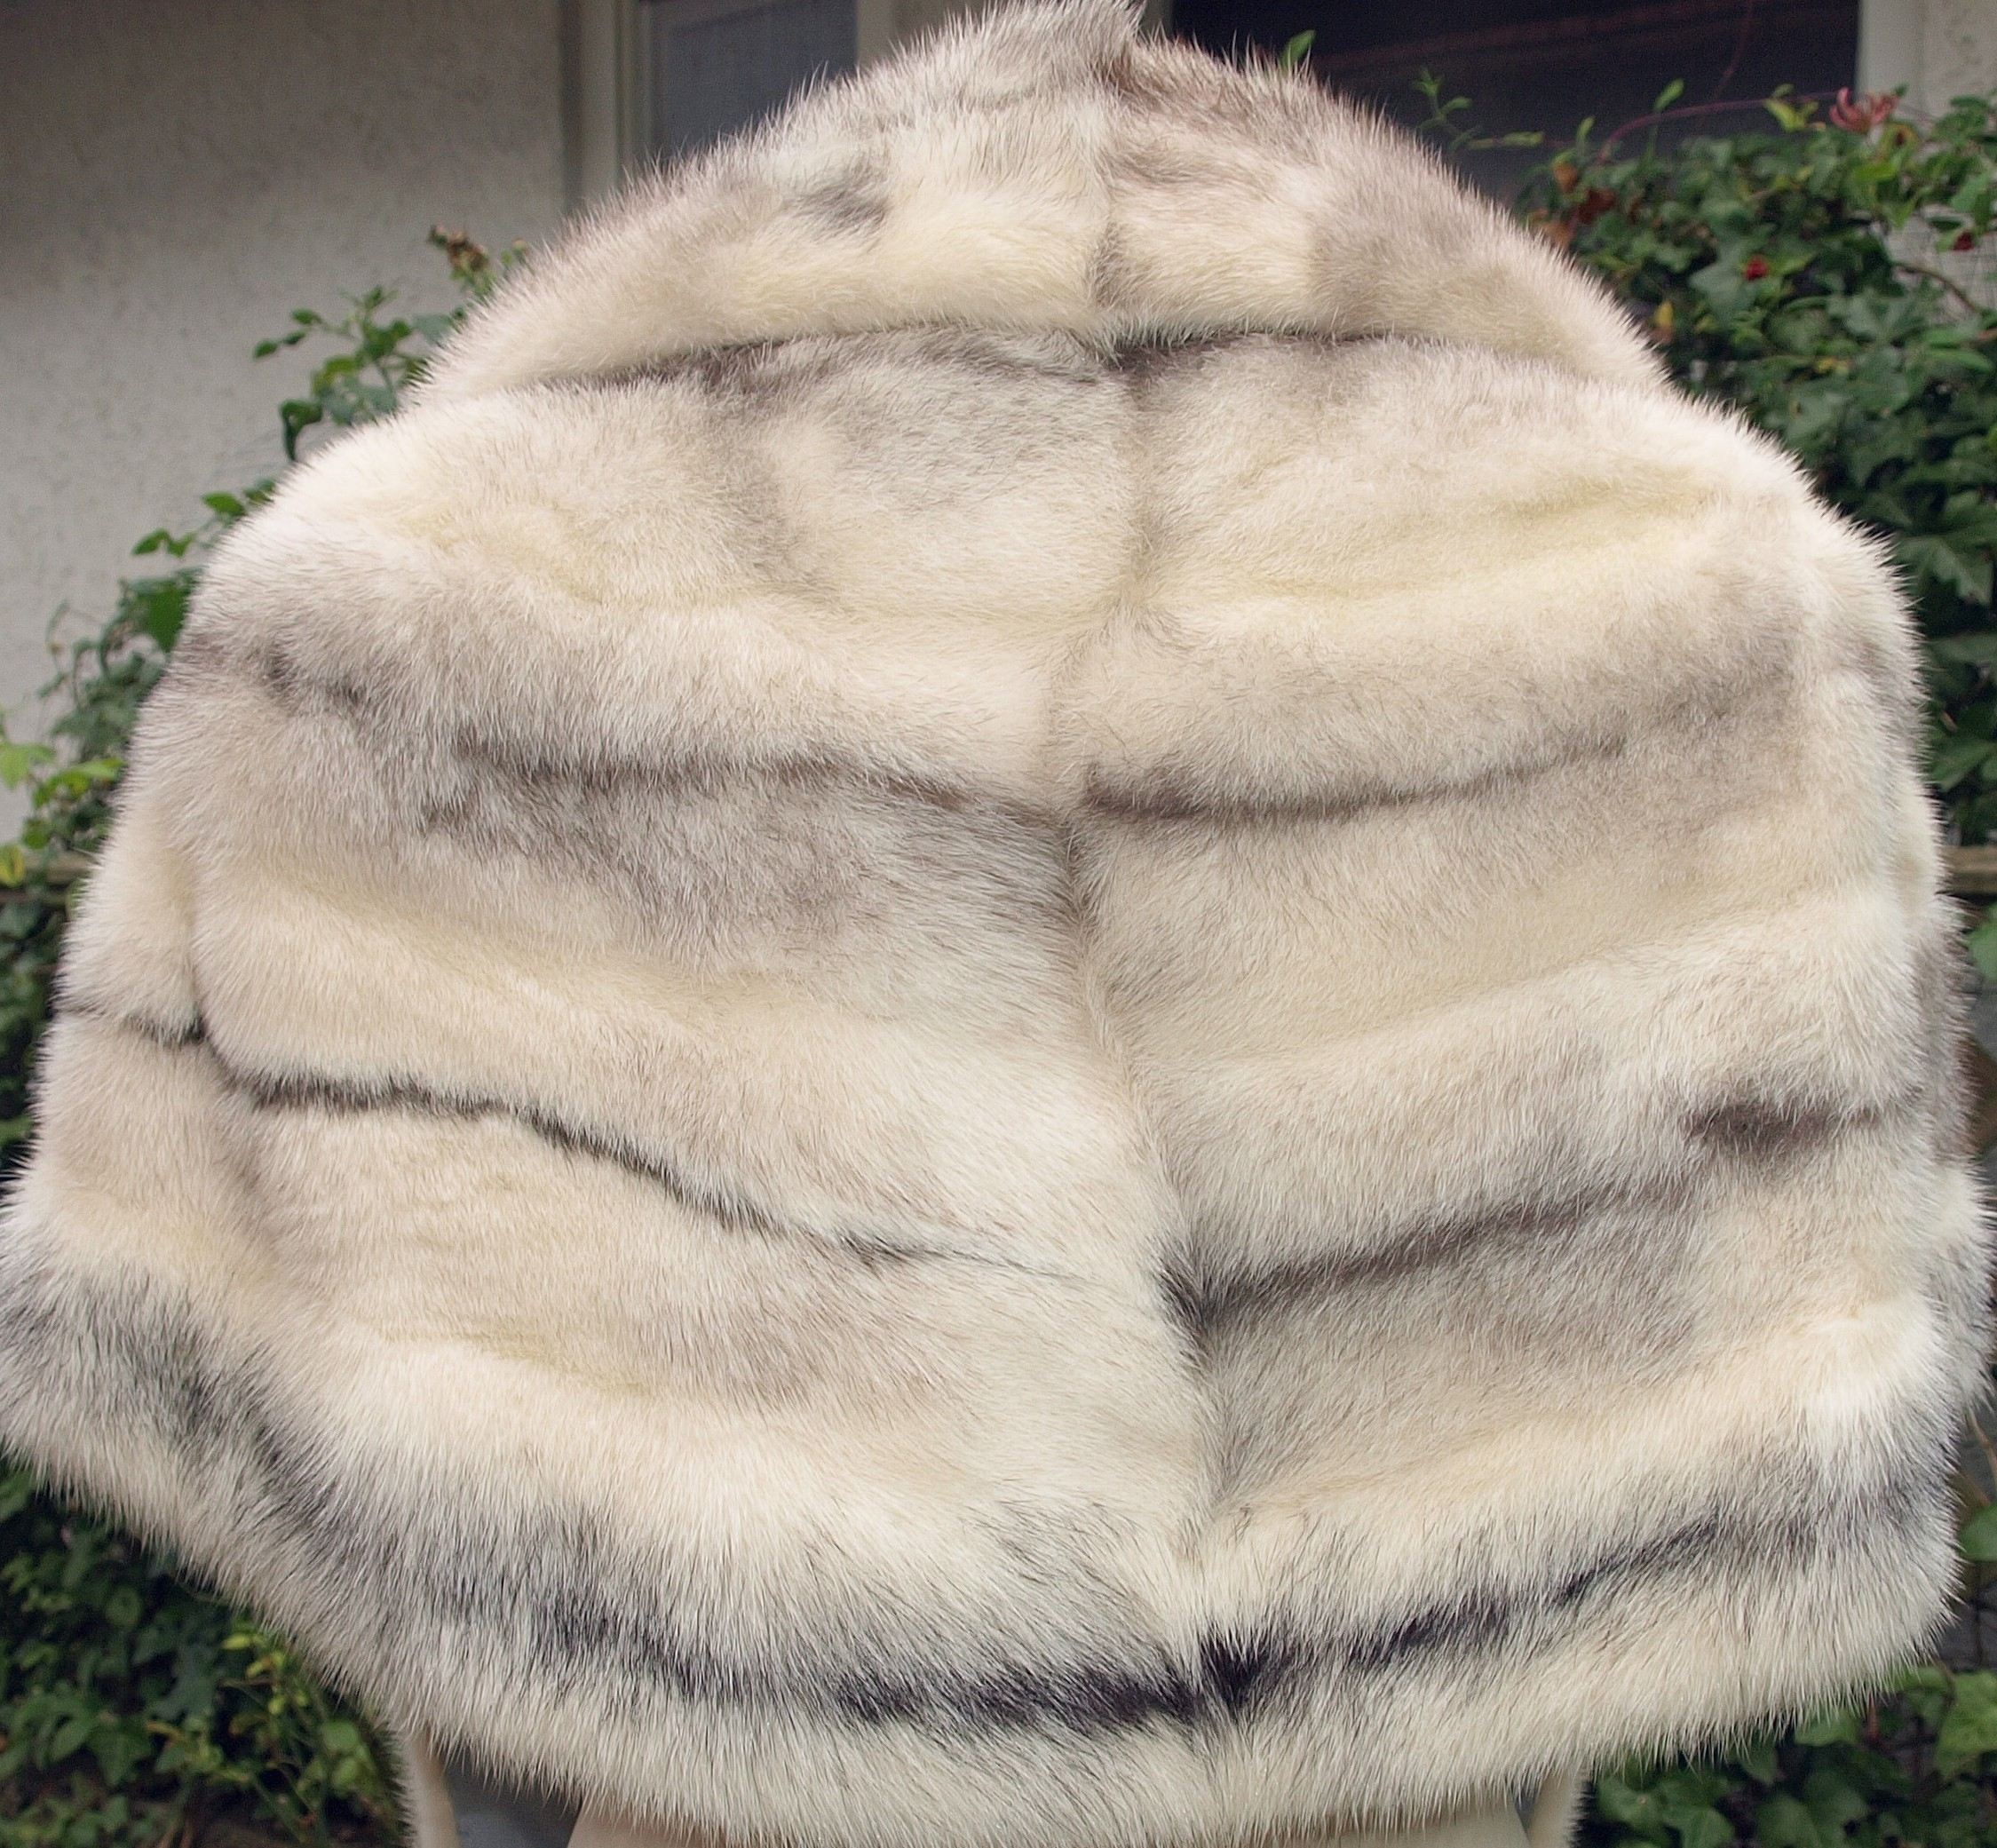 The fur called blufrost: what is it, how is it selected